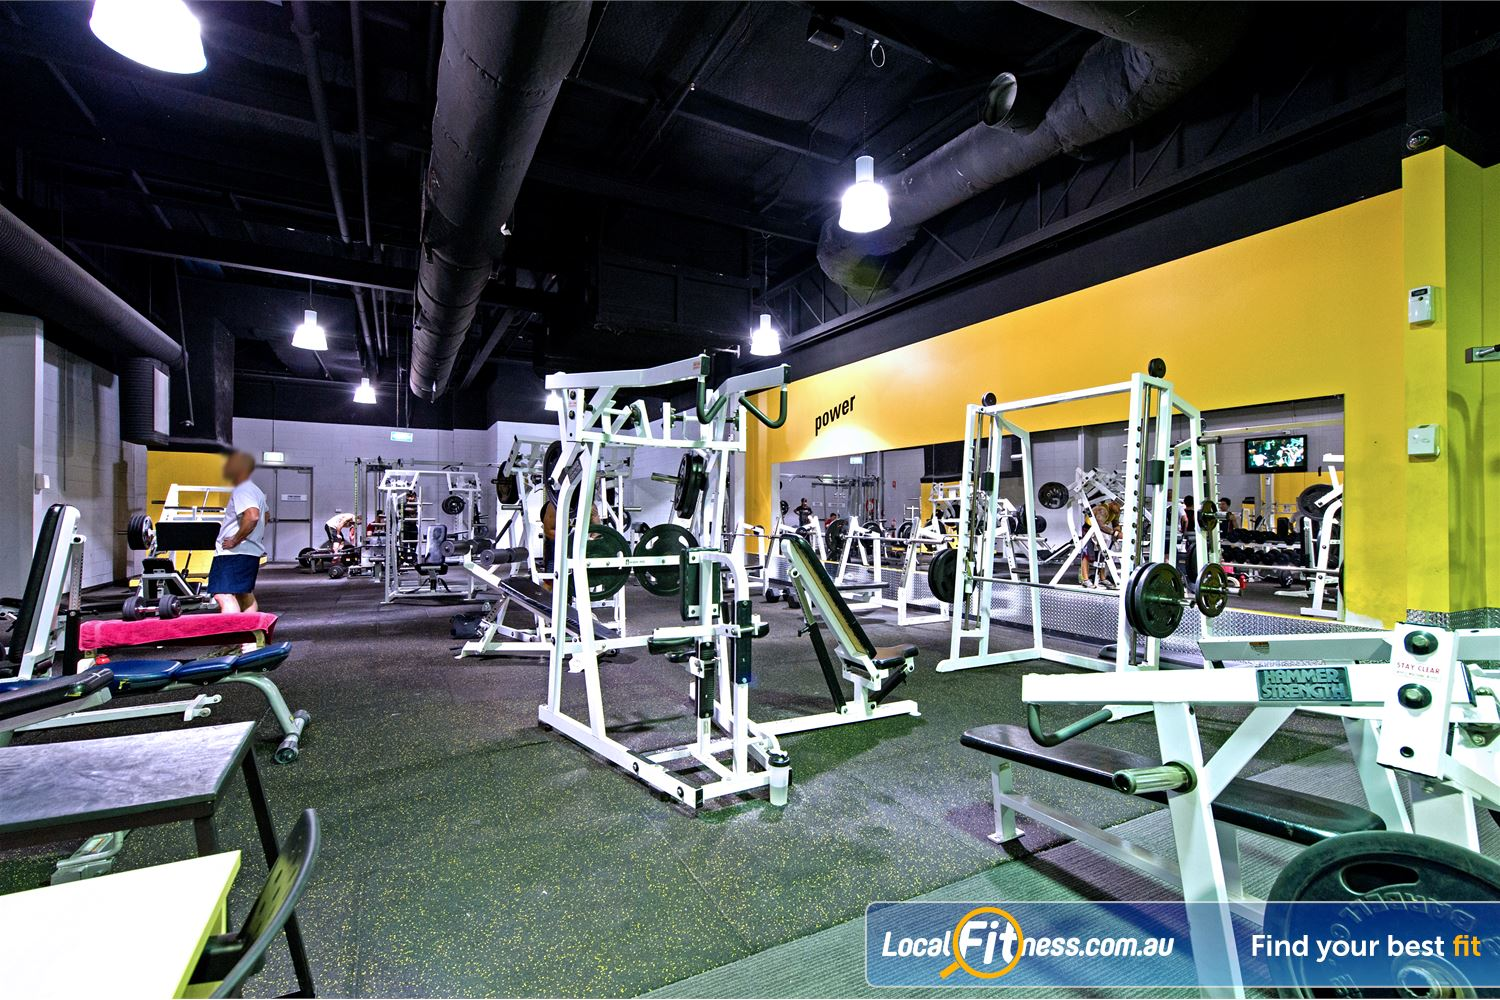 Vibe Health Clubs Near Huntingwood Our Blacktown gym has a wide selection of free-weights and machines.